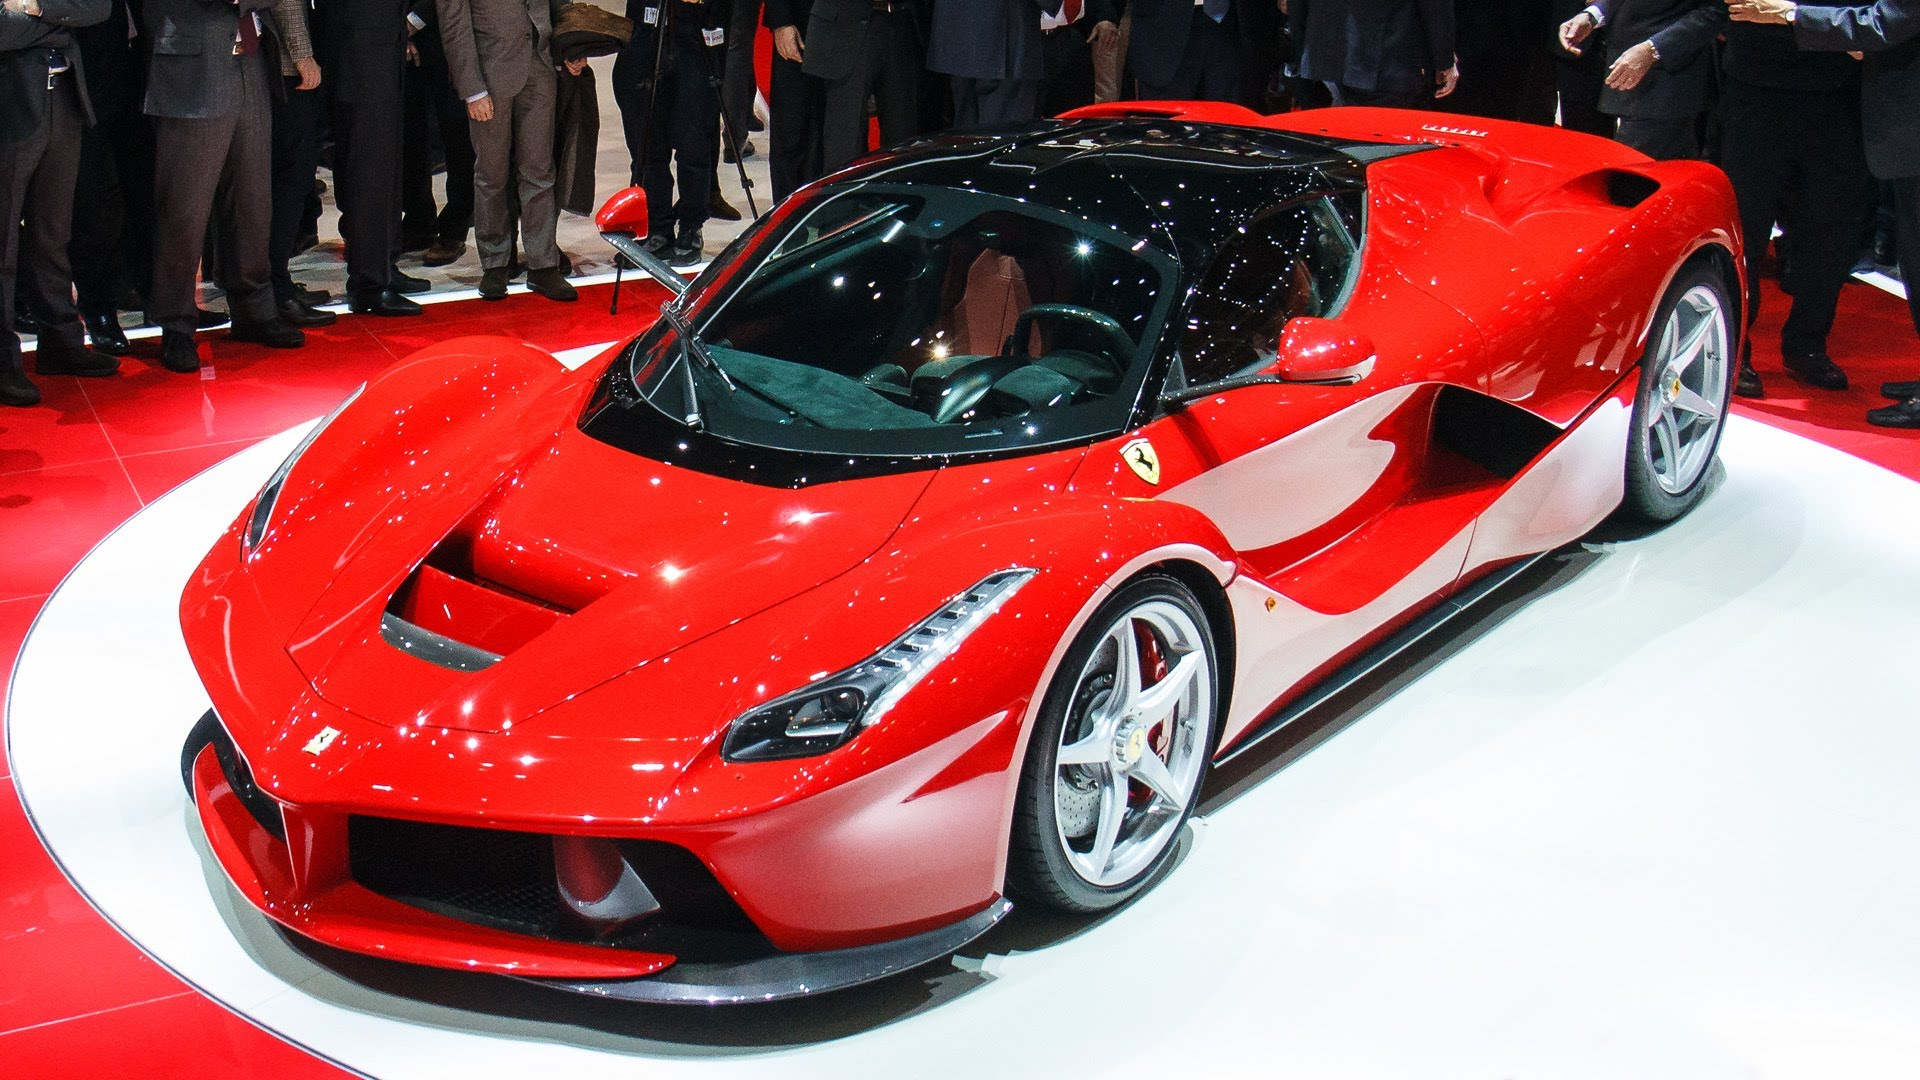 Ferrari will build a 500th LaFerrari for auction